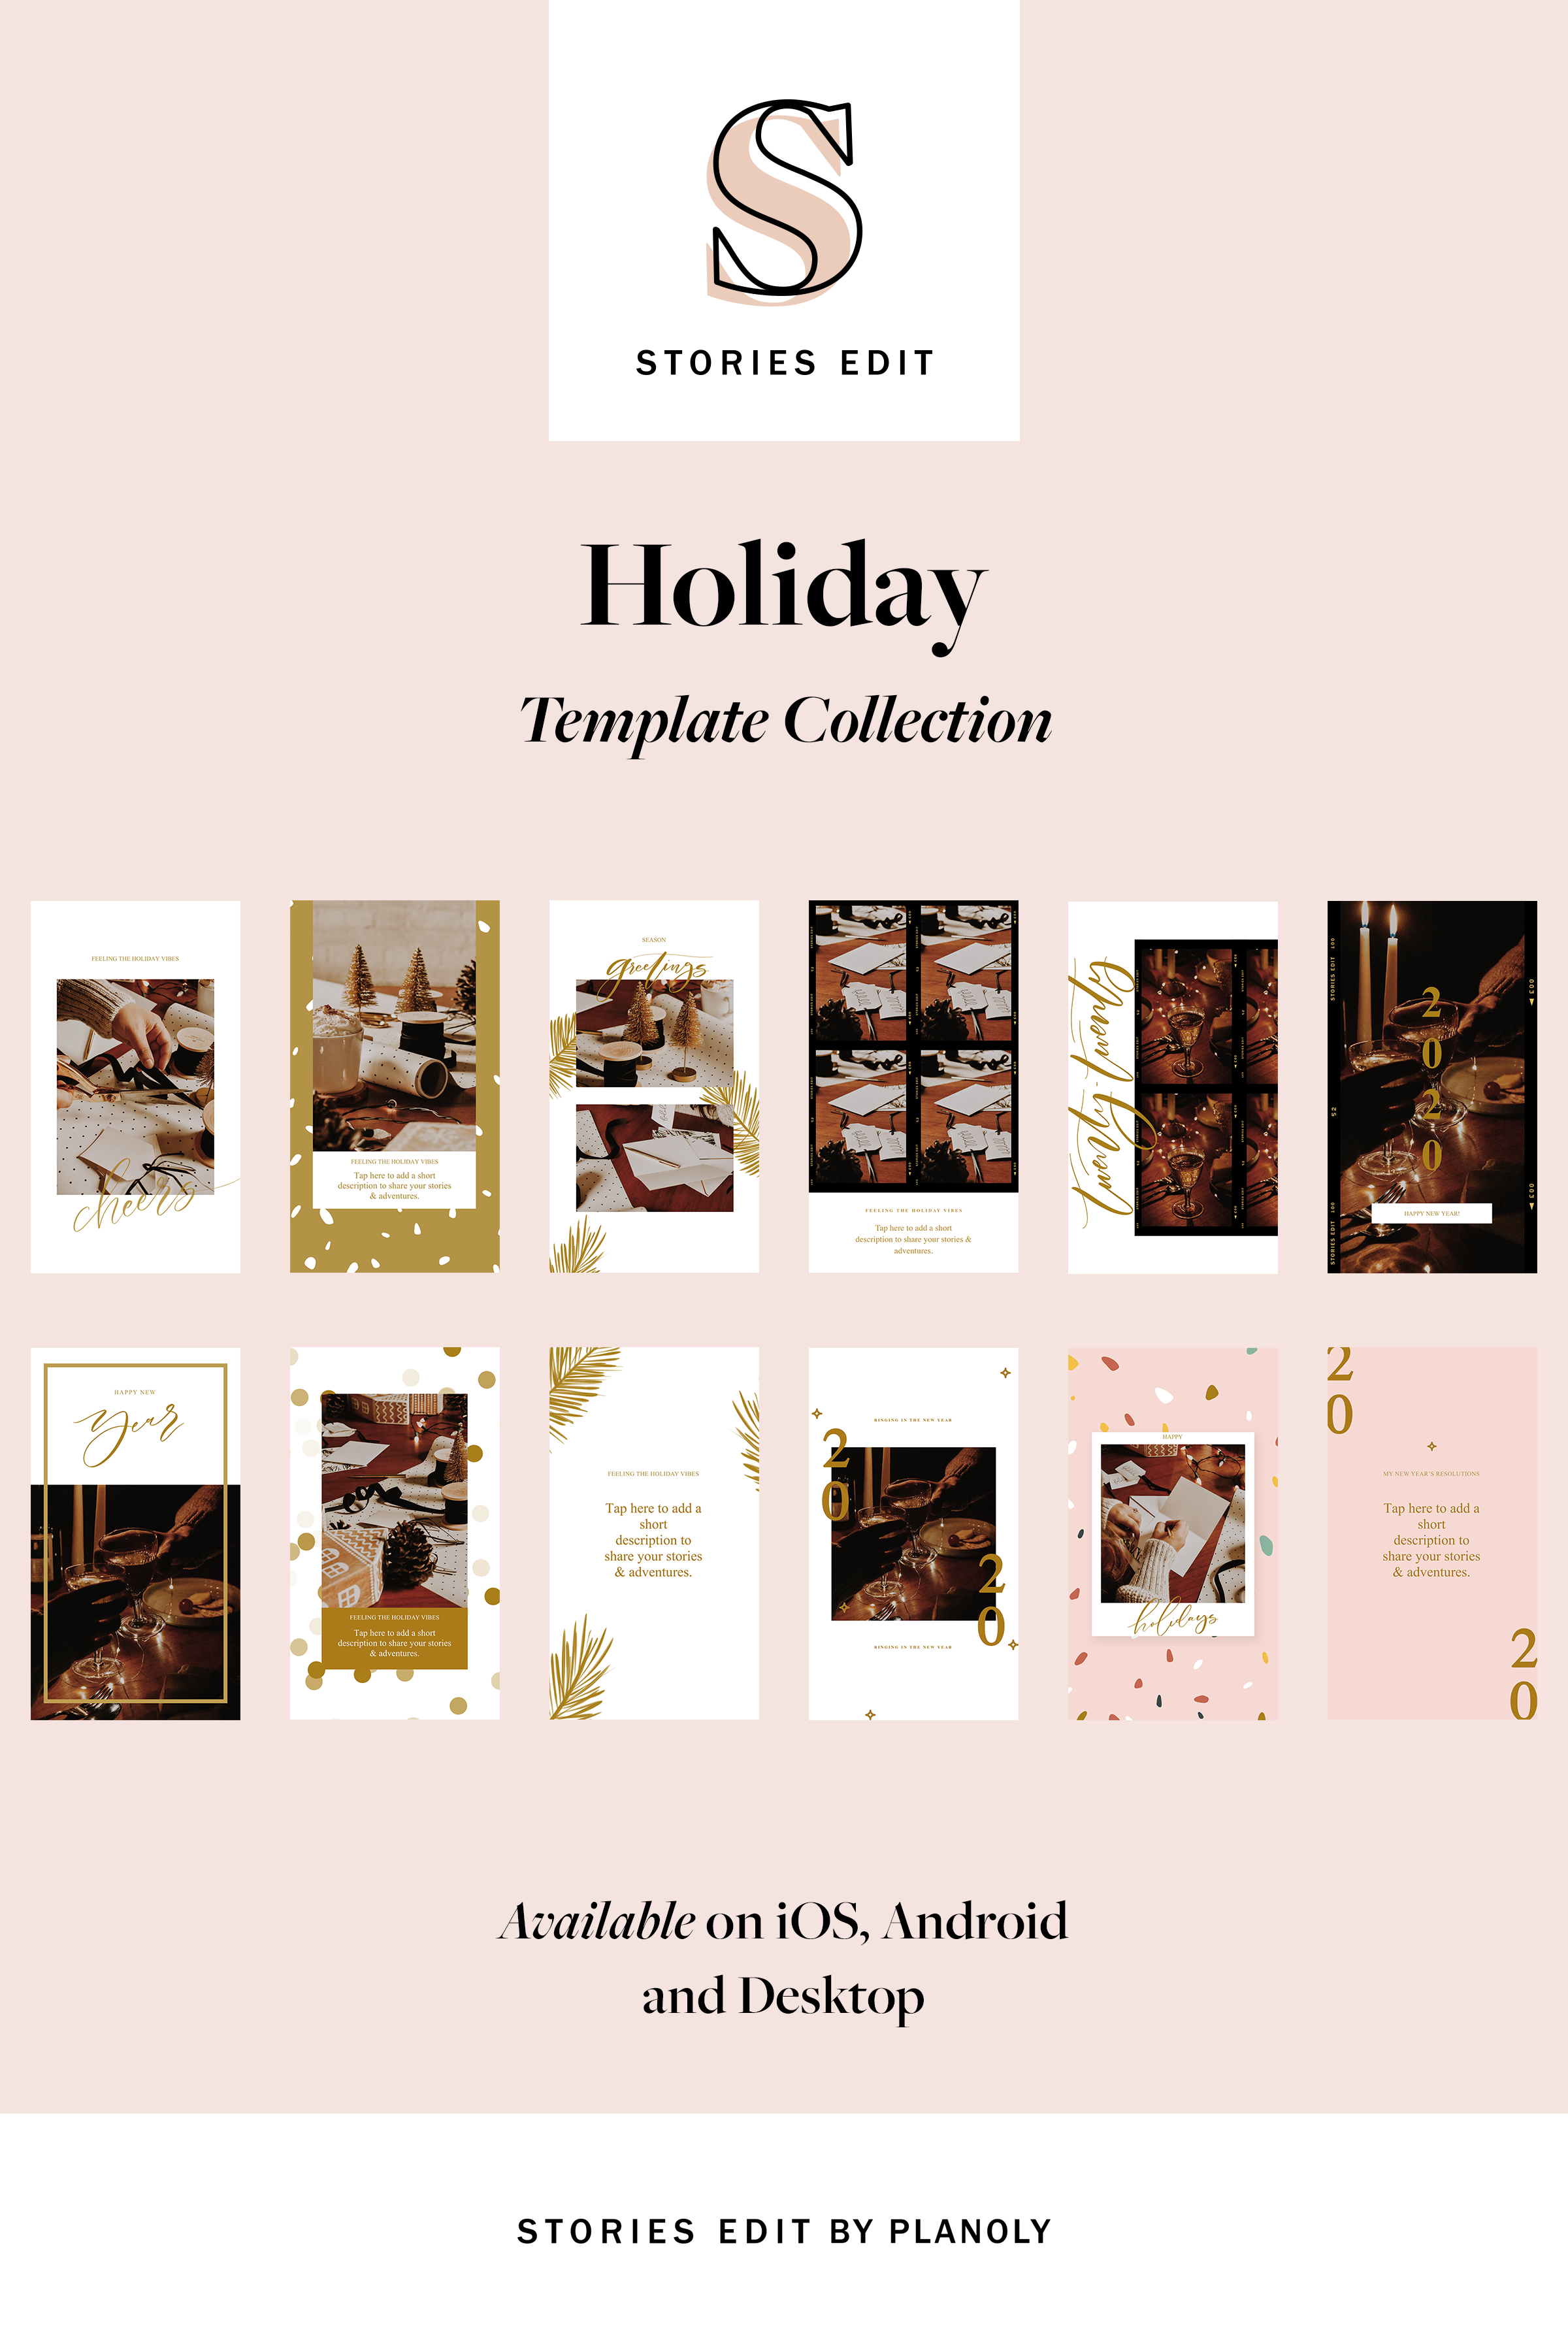 8 Instagram Story Ideas for Our StoriesEdit Holiday Template